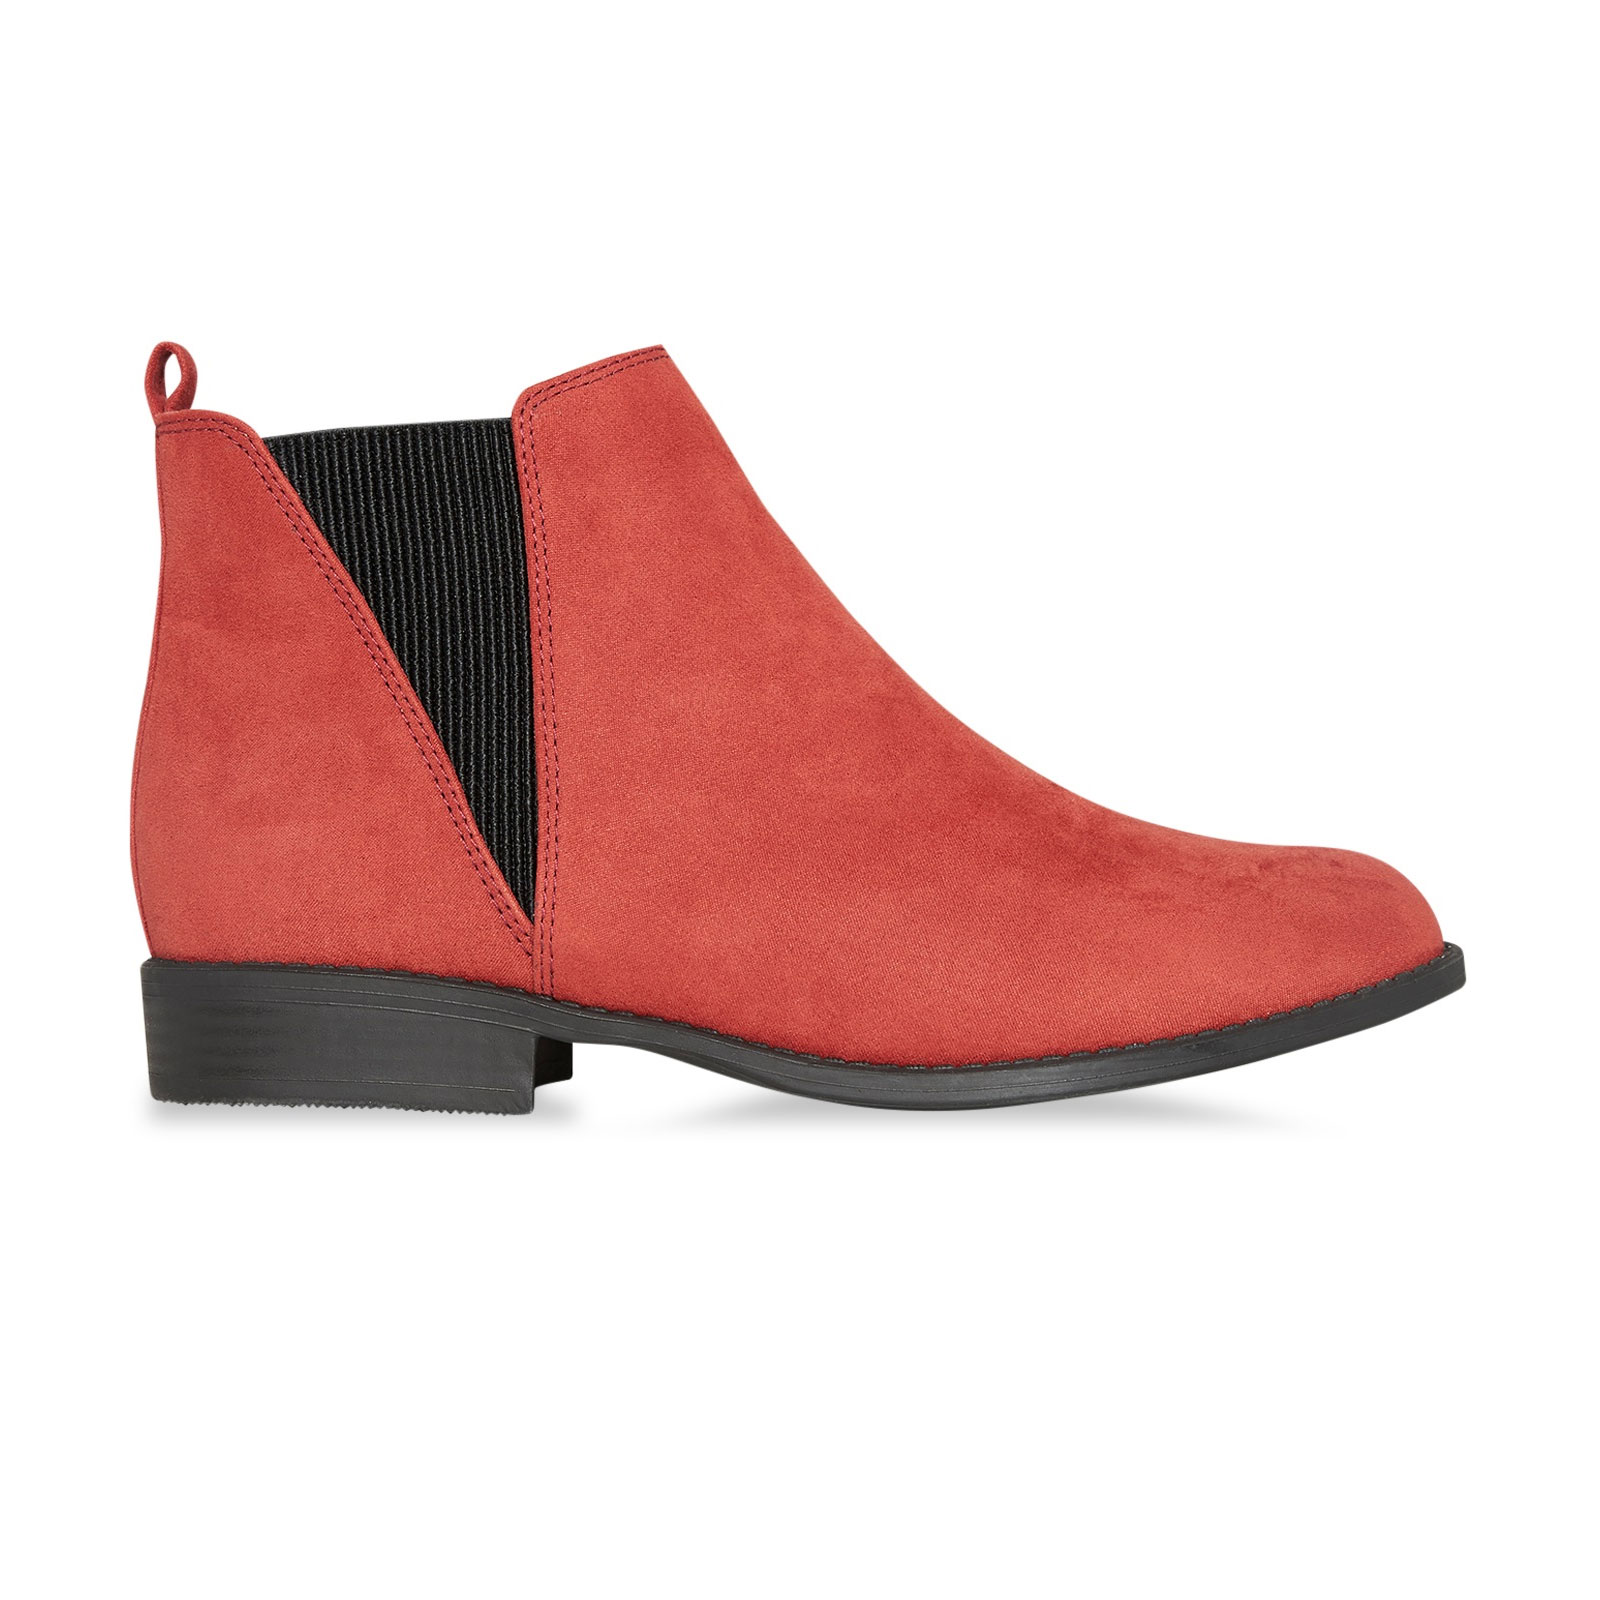 Ladies-Womens-Chelsea-Dealer-Boots-Suede-Ankle-Slip-On-Low-Heel-Shoes-Size-3-8 thumbnail 8